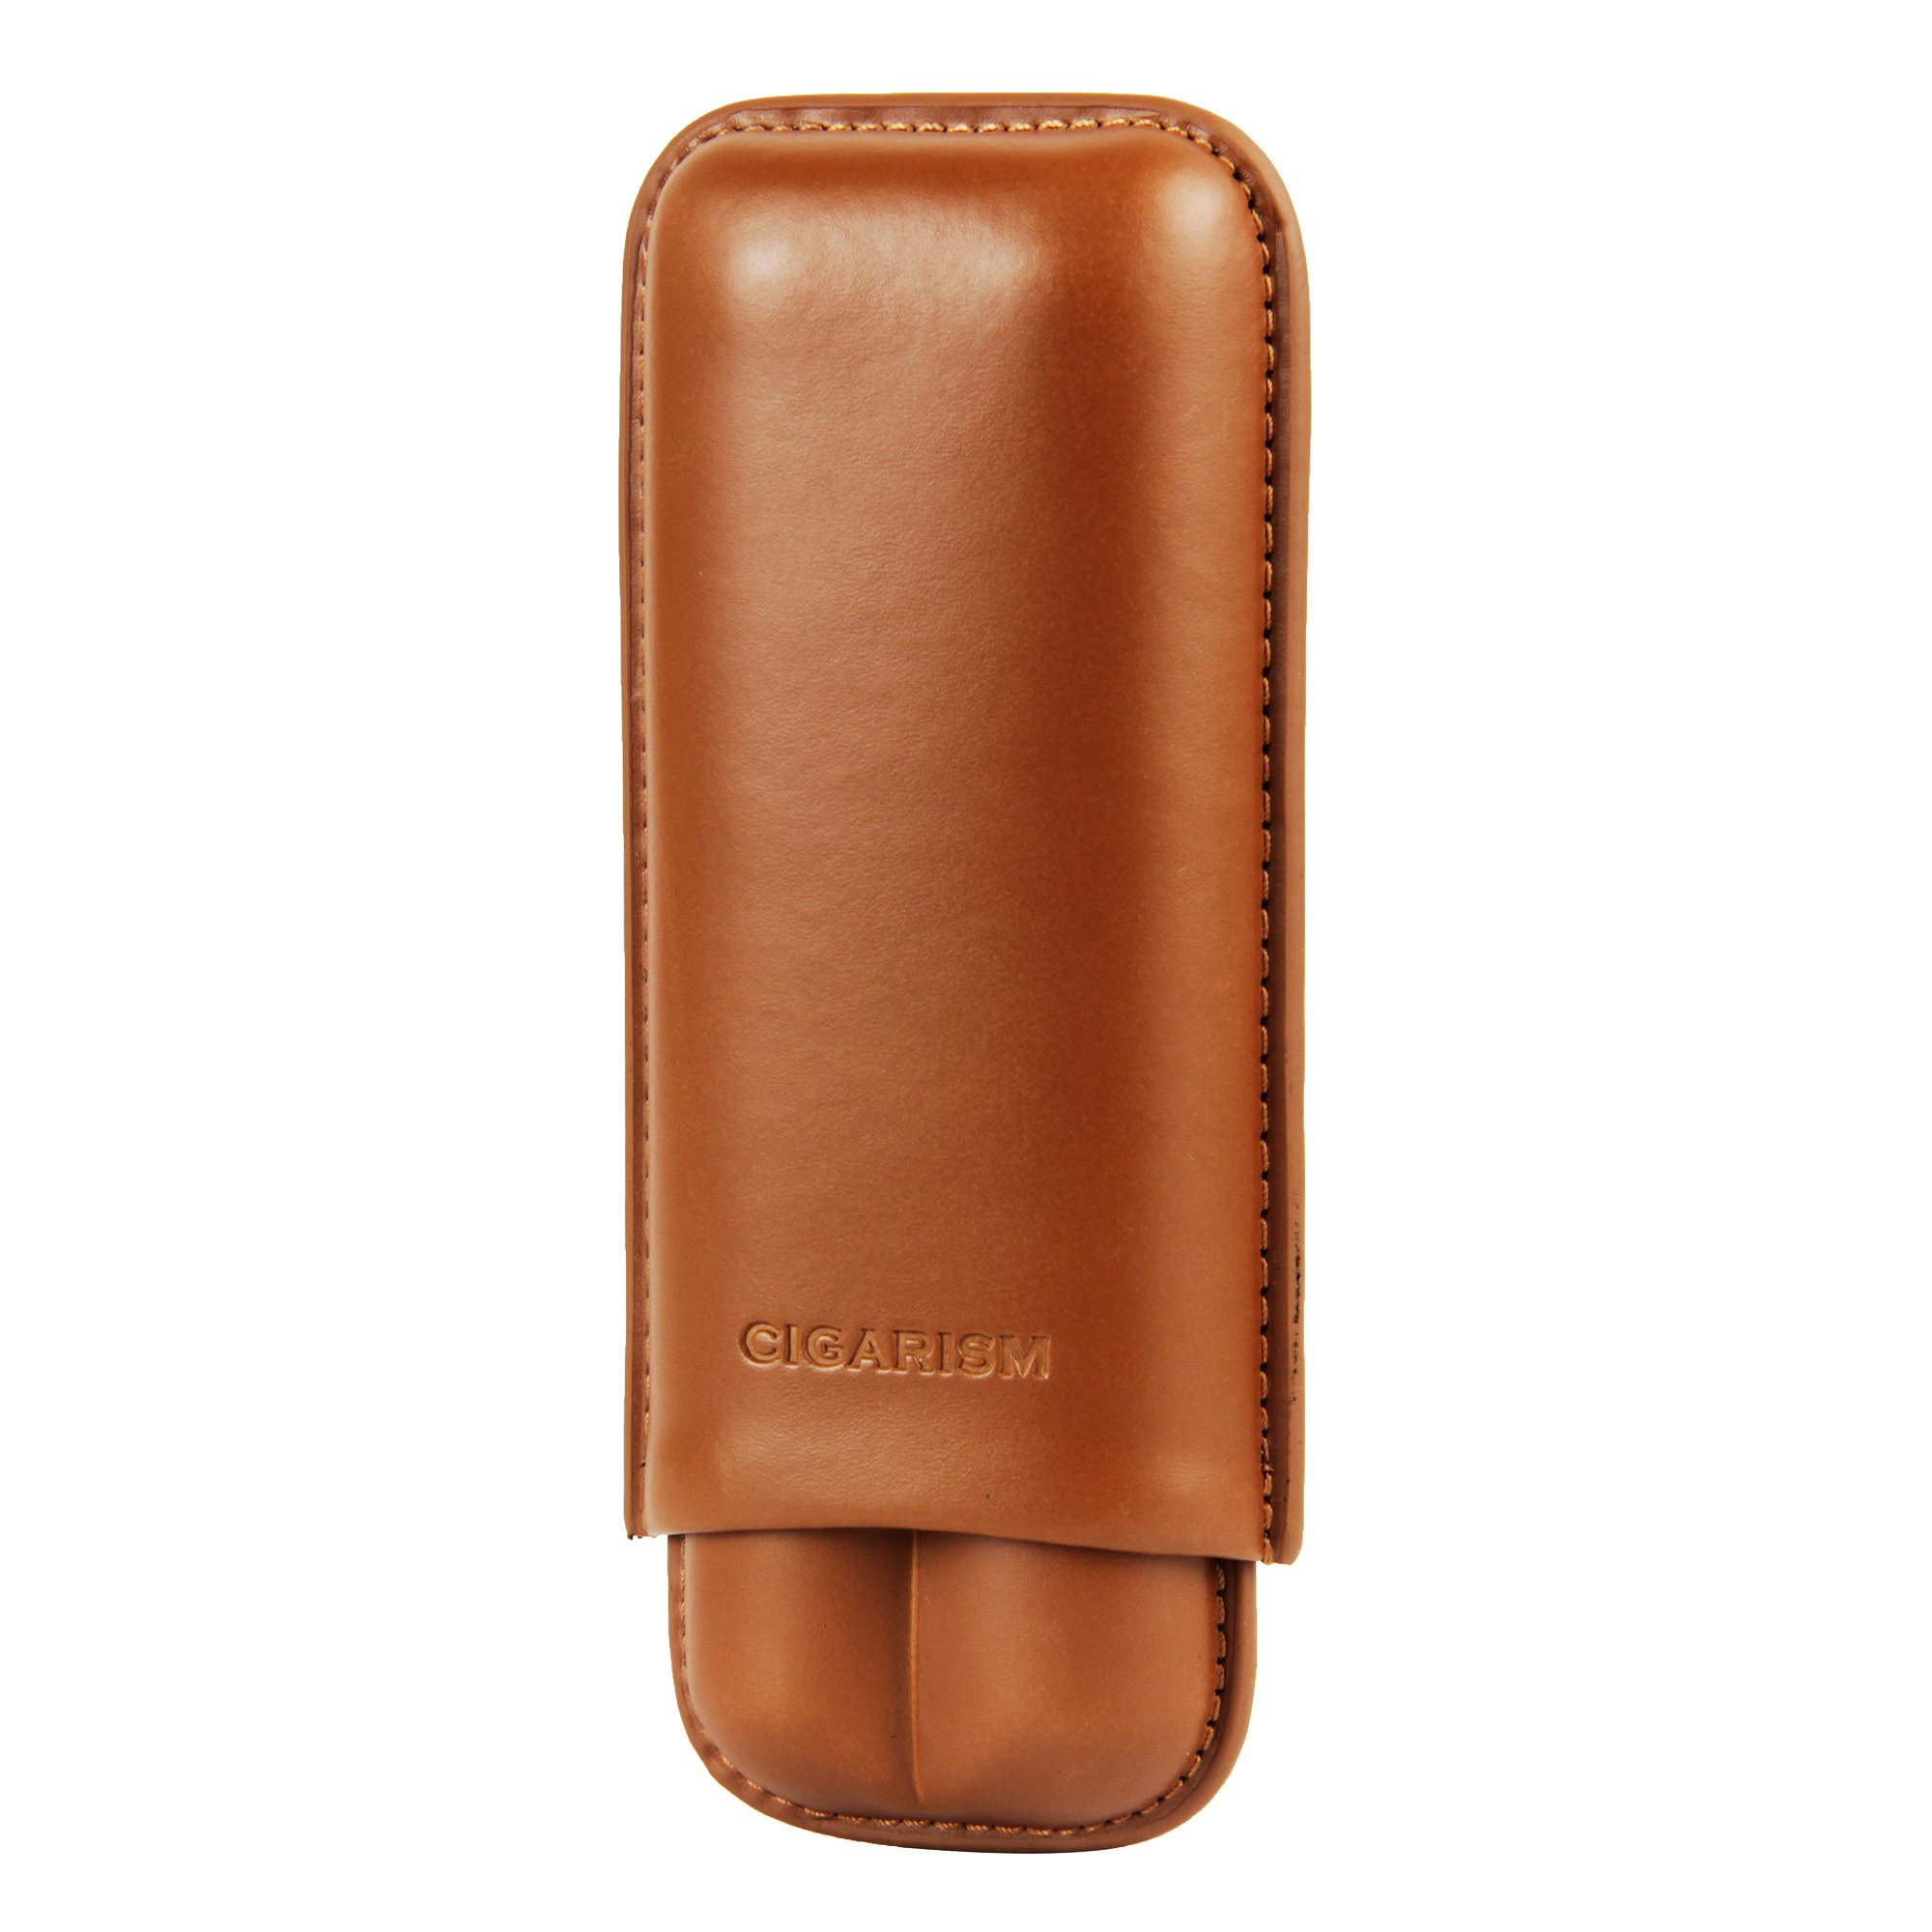 CIGARISM Brown Genuine Leather Cigar Travel Holder Case 2 Count